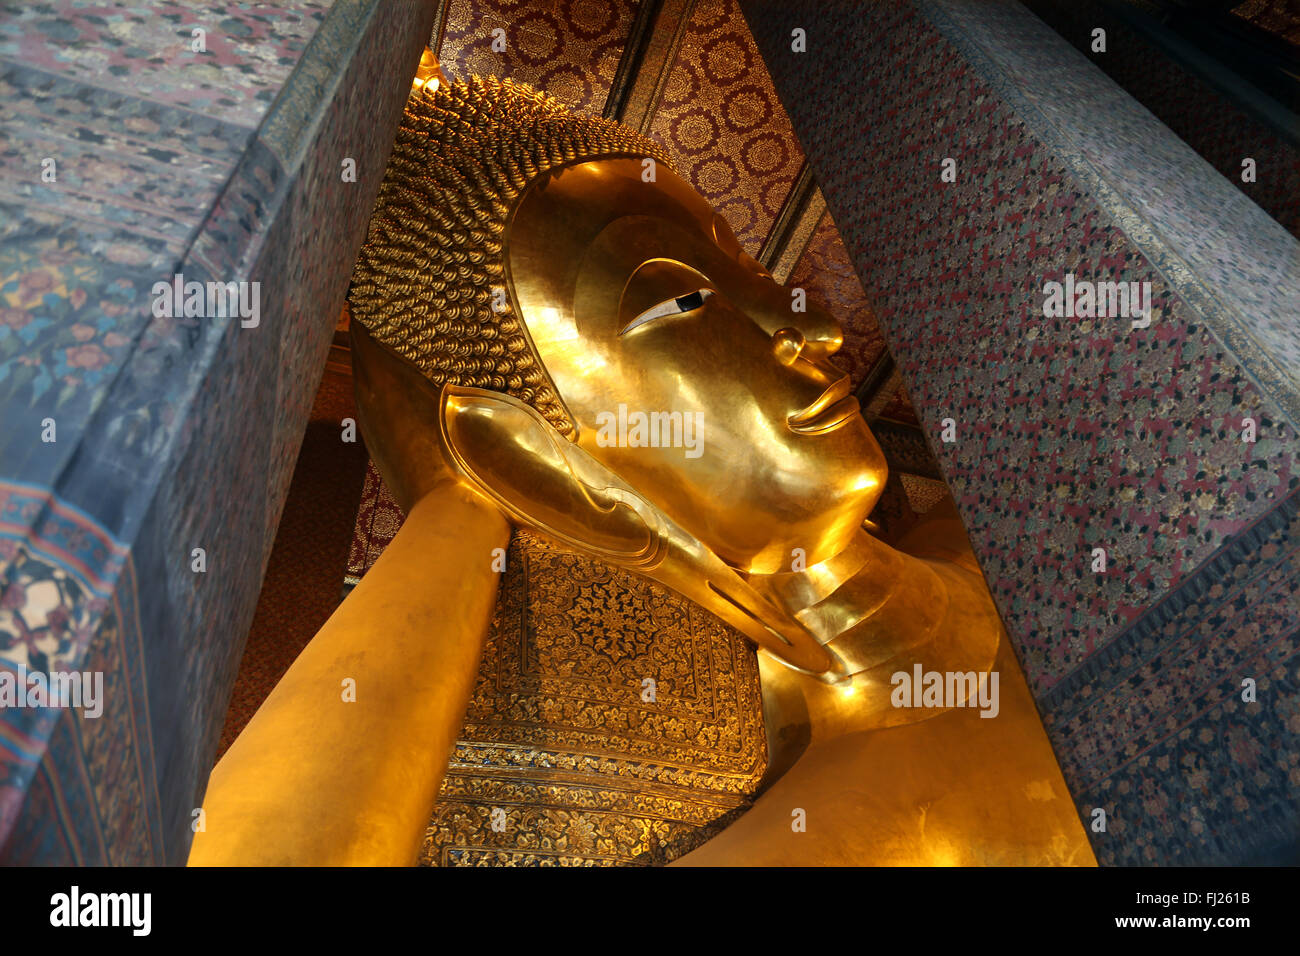 Thailand pictures of people and landscapes Bangkok - Stock Image